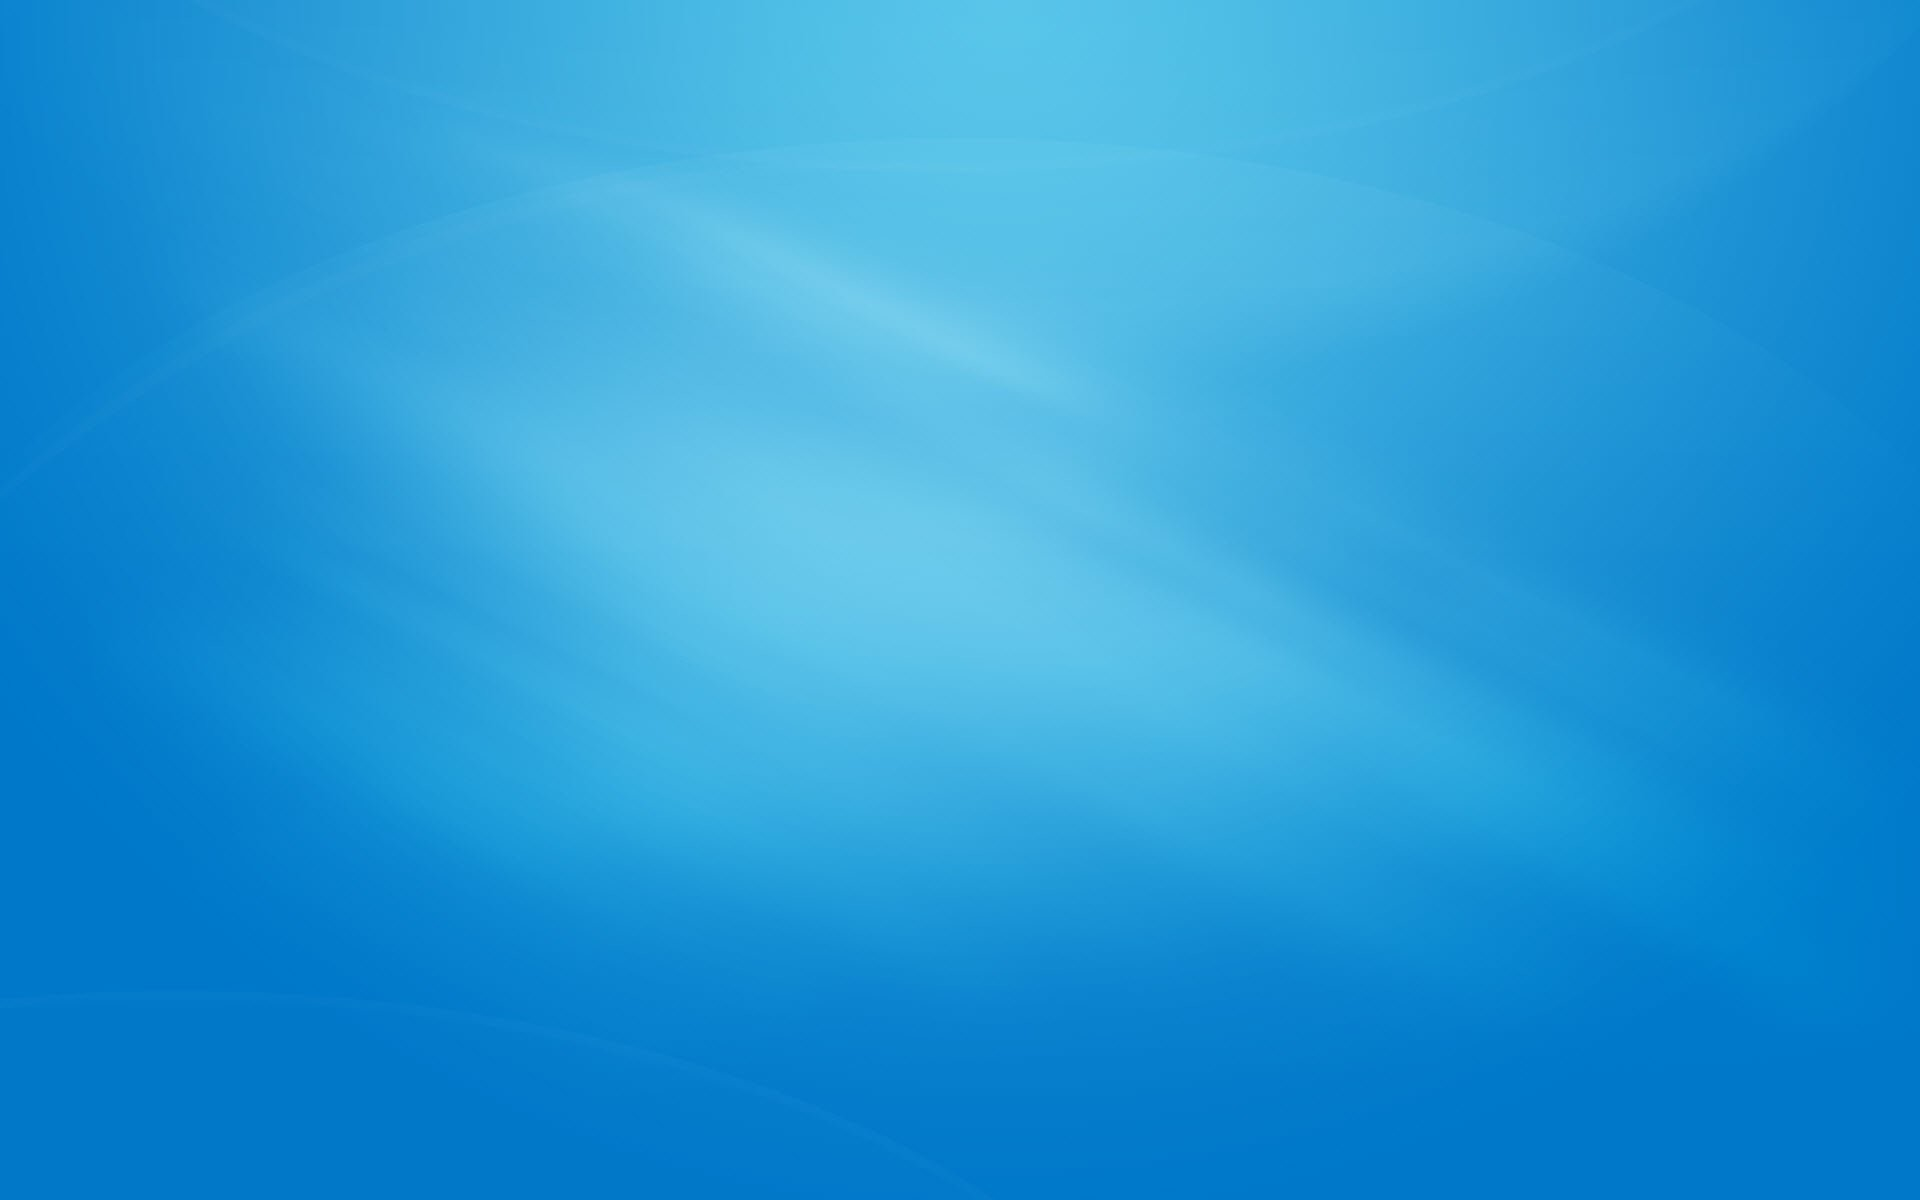 1920x1200 Abstract Blue wallpapers (Desktop, Phone, Tablet) - Awesome .